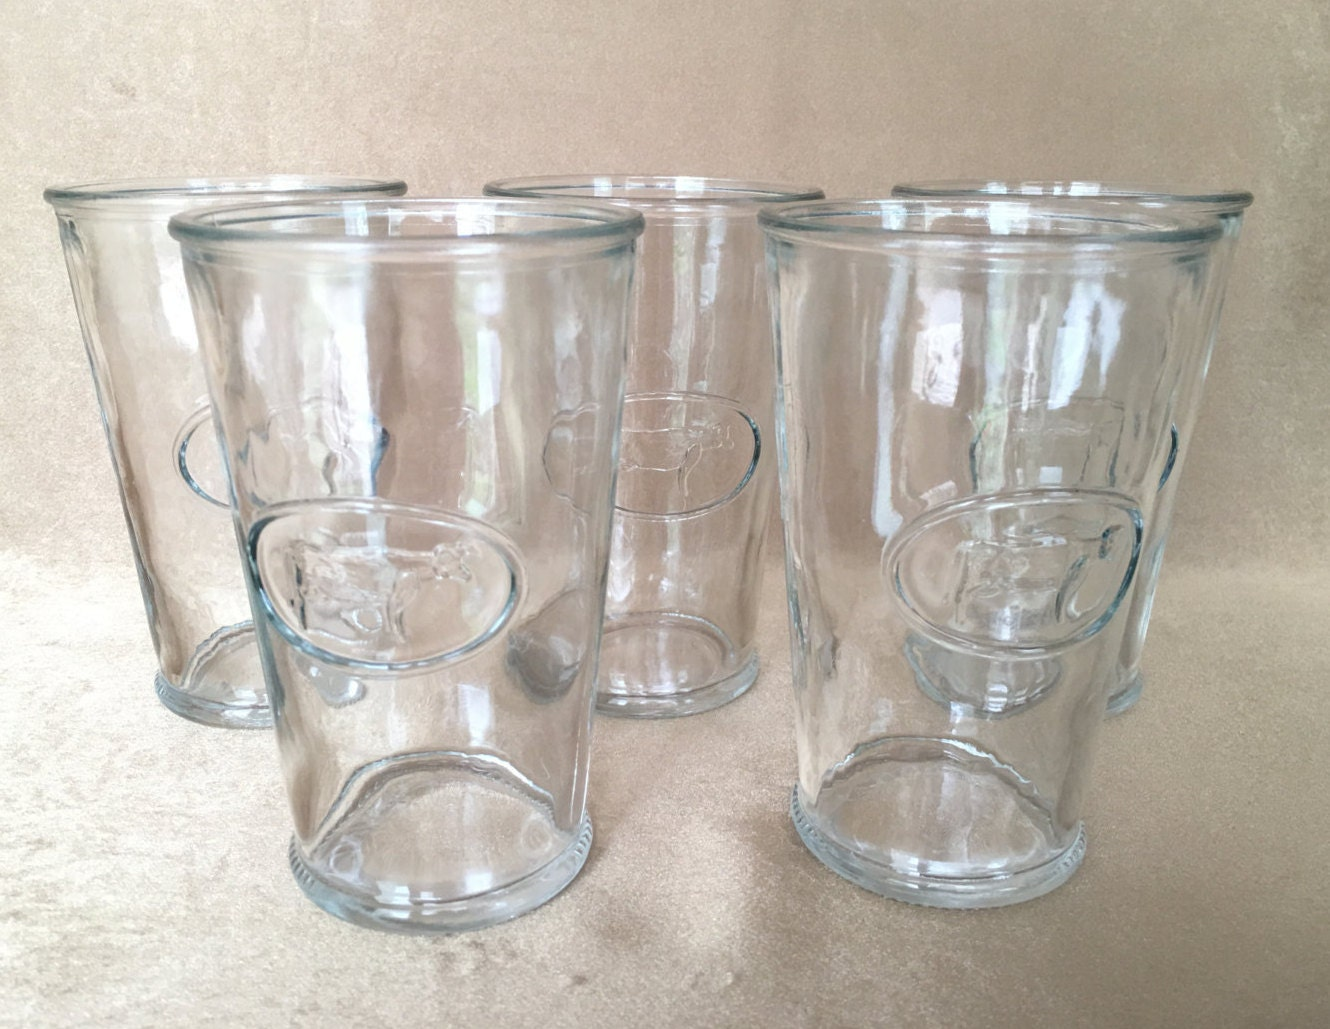 Farmhouse Drinking Glasses Cow Drinking Glasses Raised Cow Design Raised Relief Clear